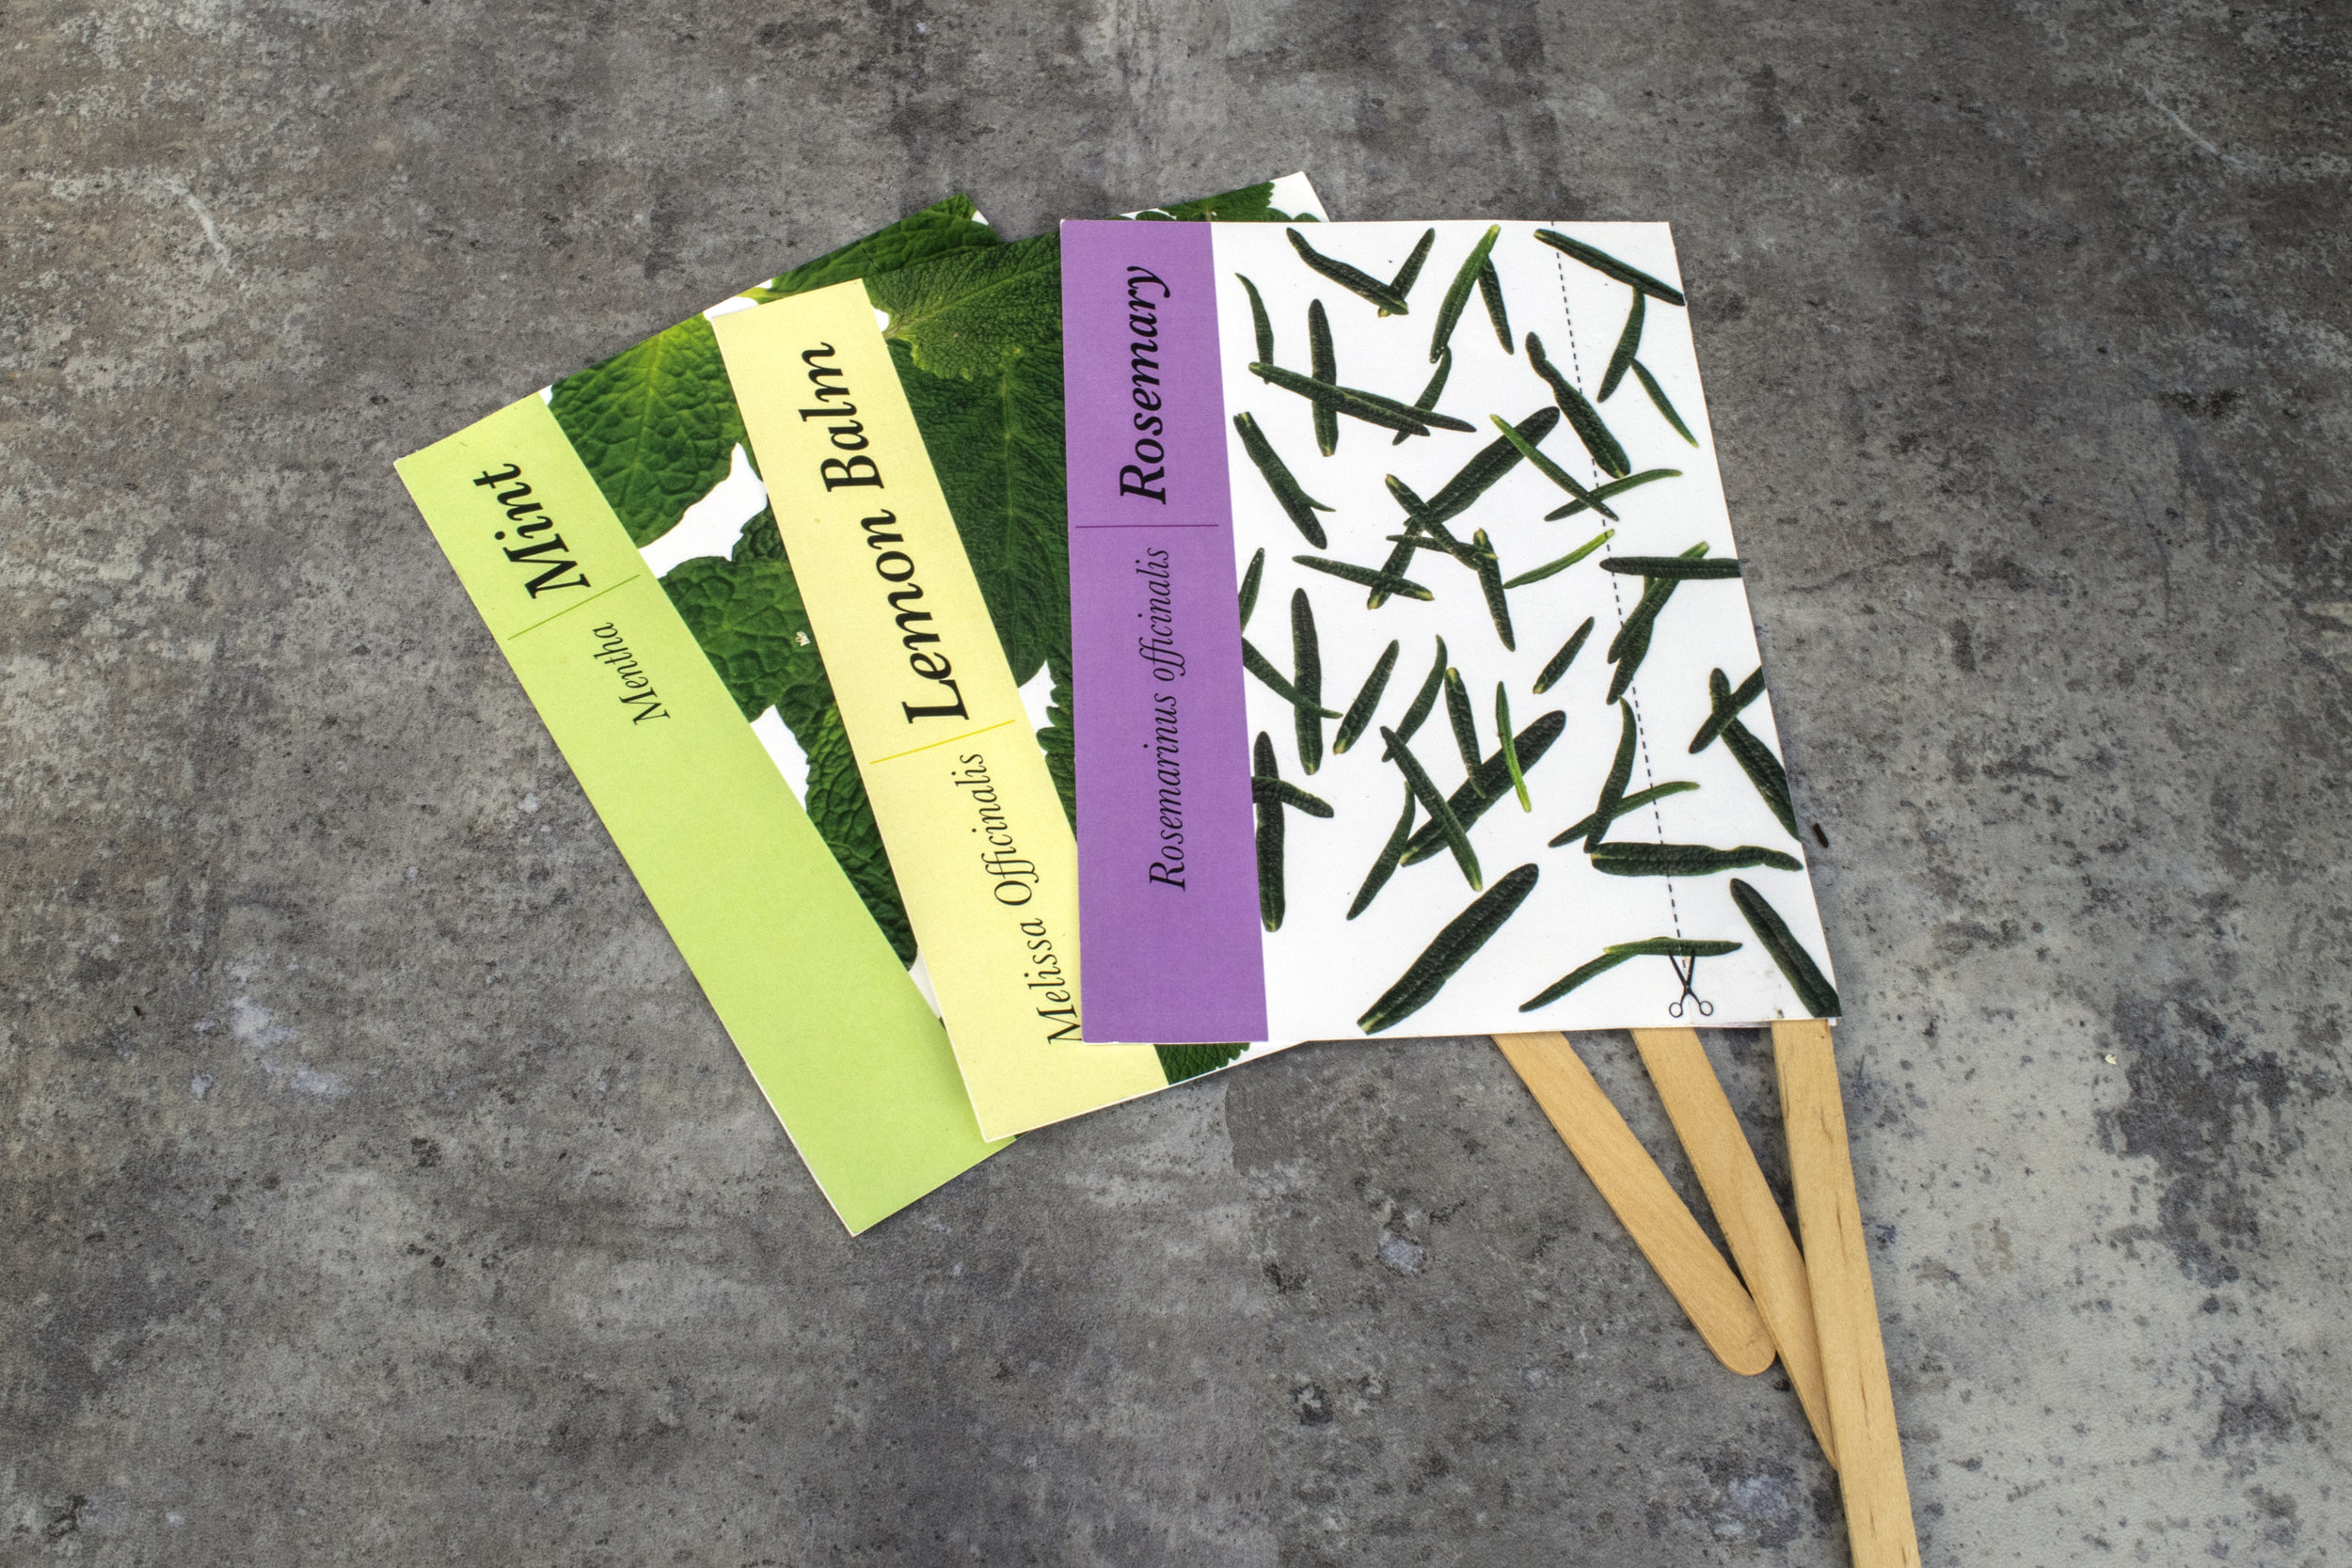 "I created an herb starter kit that contains herb information and garden tips. Each card includes a detachable label that can be put in your garden so you can grow herbs all year around. ""Its gardening thyme."""